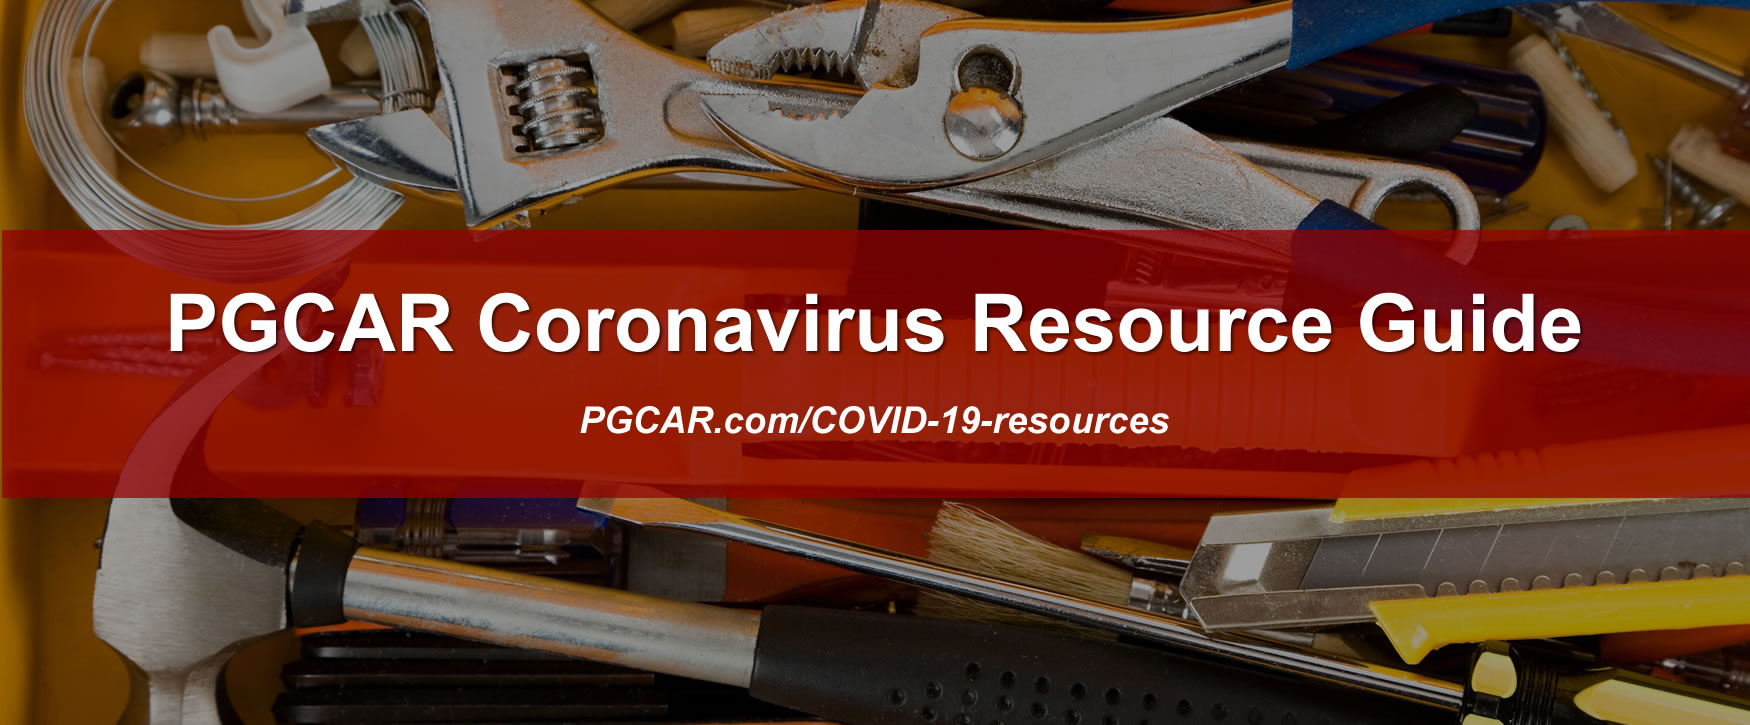 PGCAR Coronavirus Resource Guide